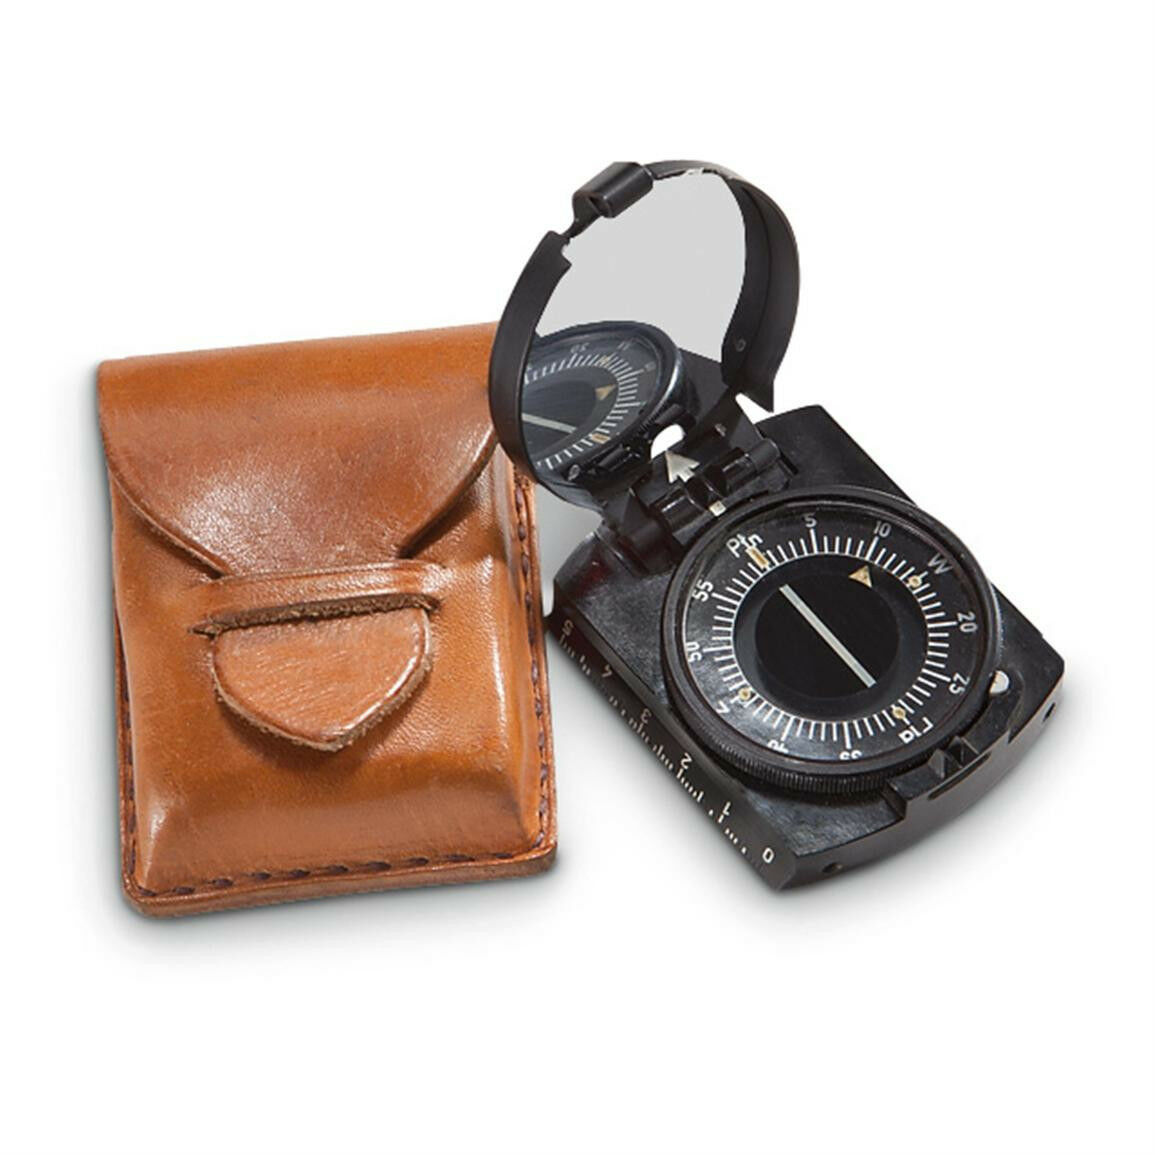 Genuine Polish Army Military Compass Warsaw Pact w  leather  pouch  factory outlets